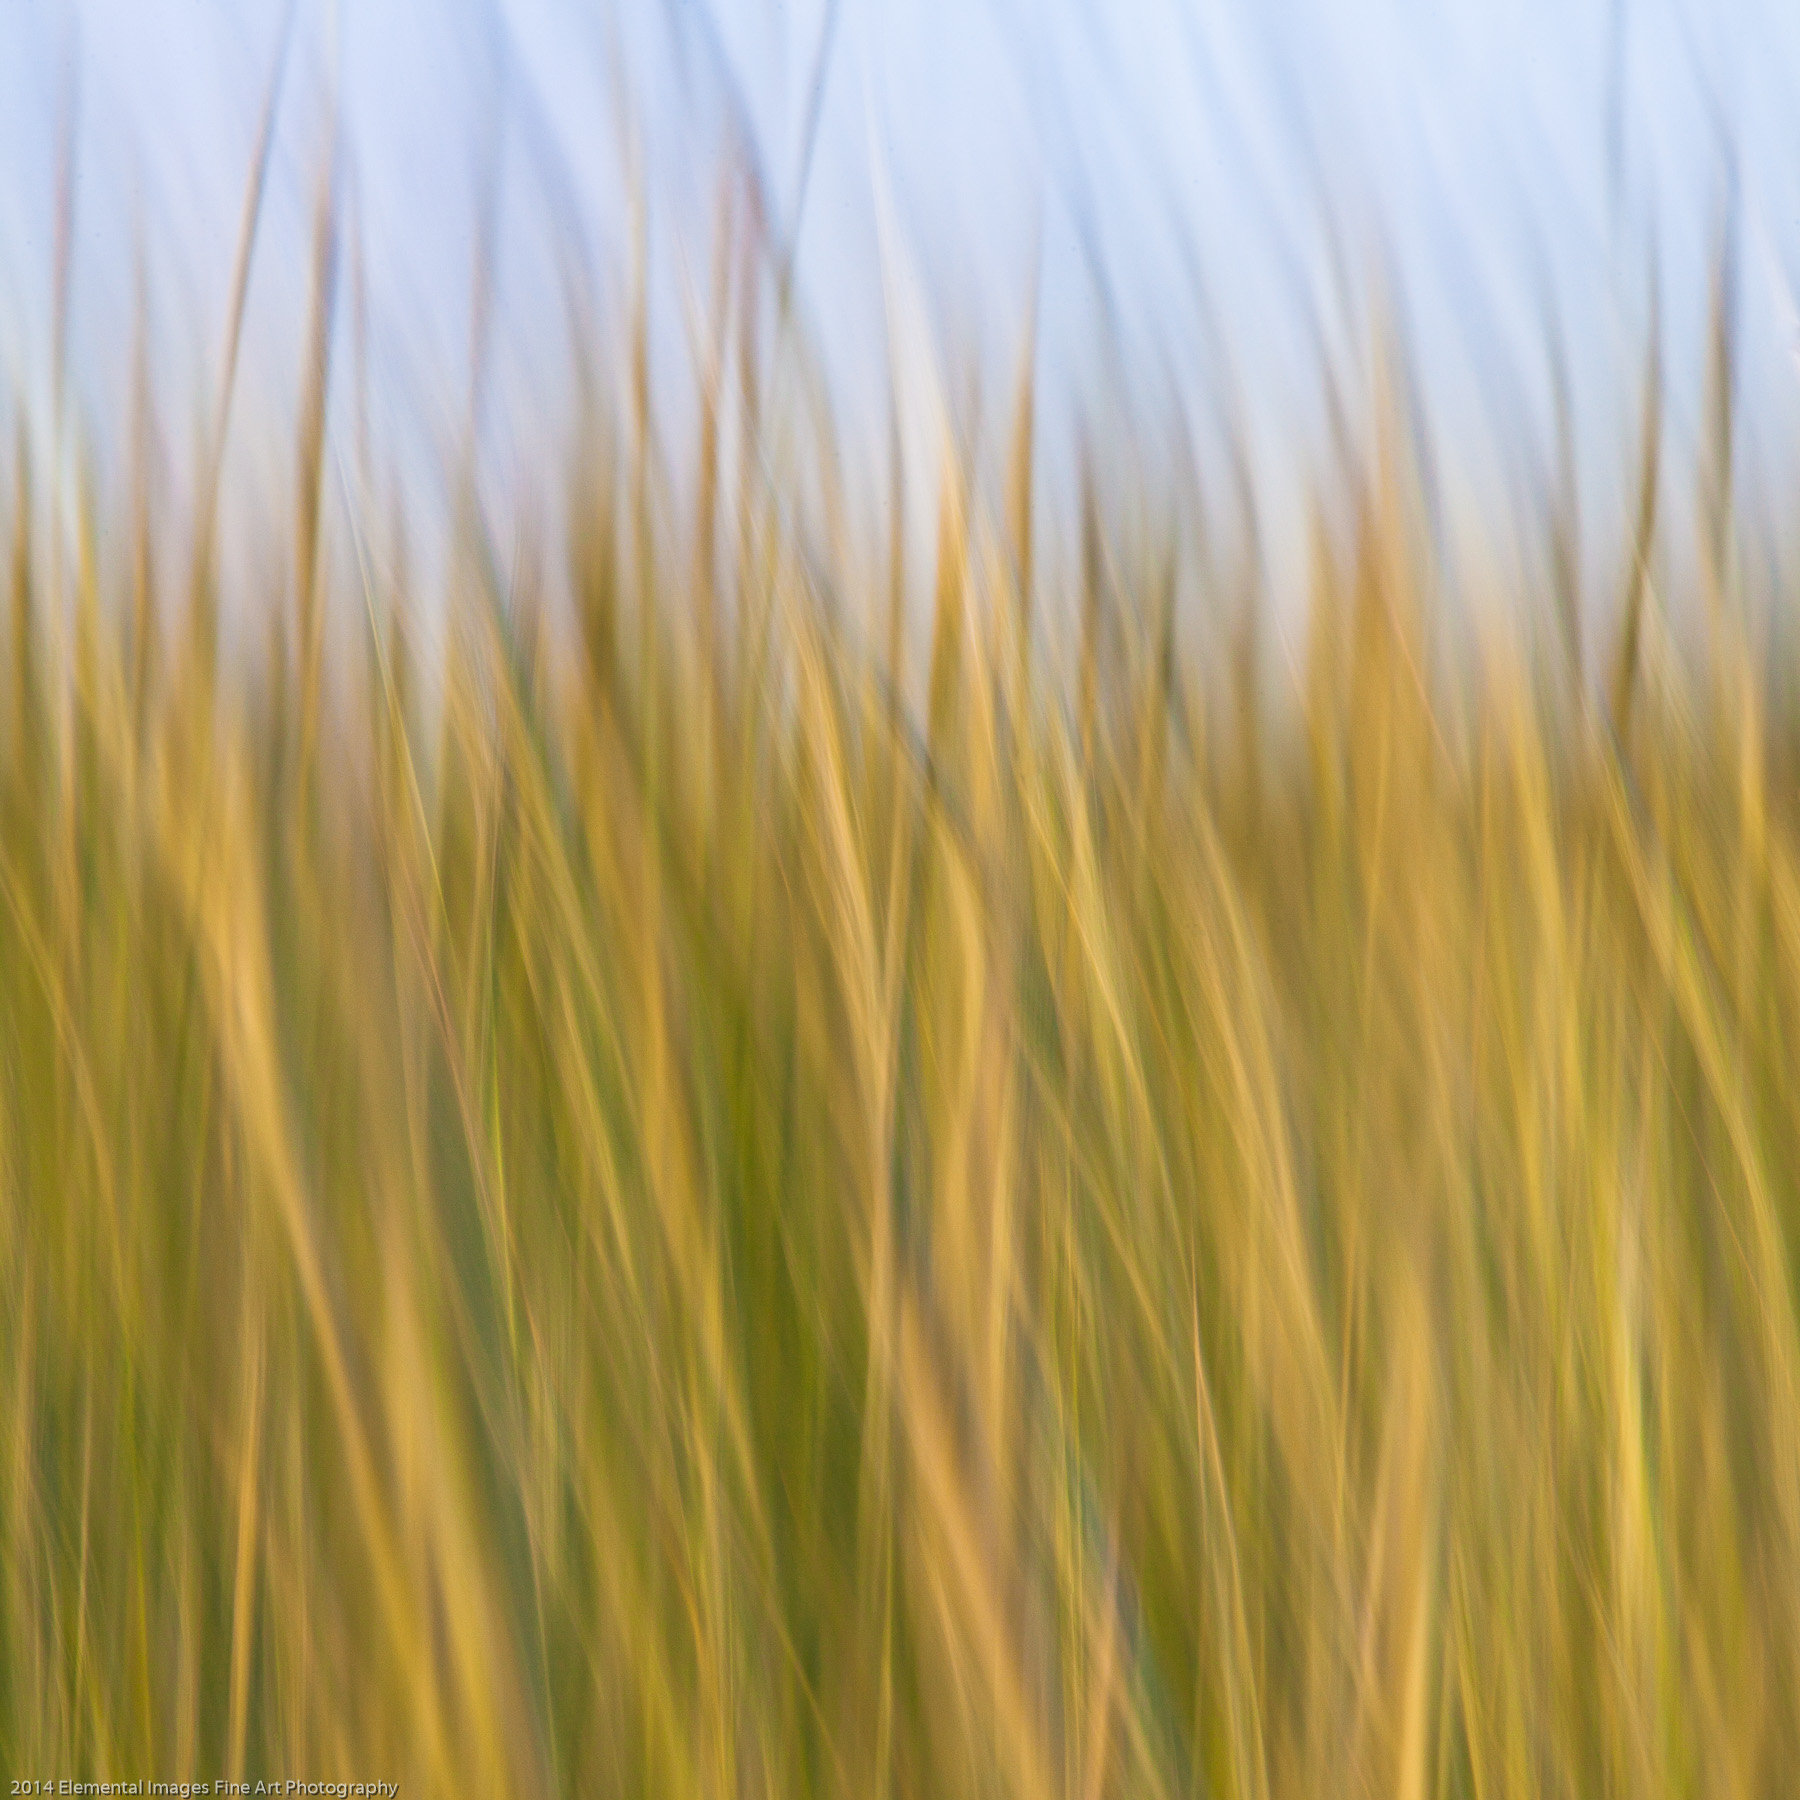 Grasses CIII | The Palouse | WA | USA - © 2014 Elemental Images Fine Art Photography - All Rights Reserved Worldwide